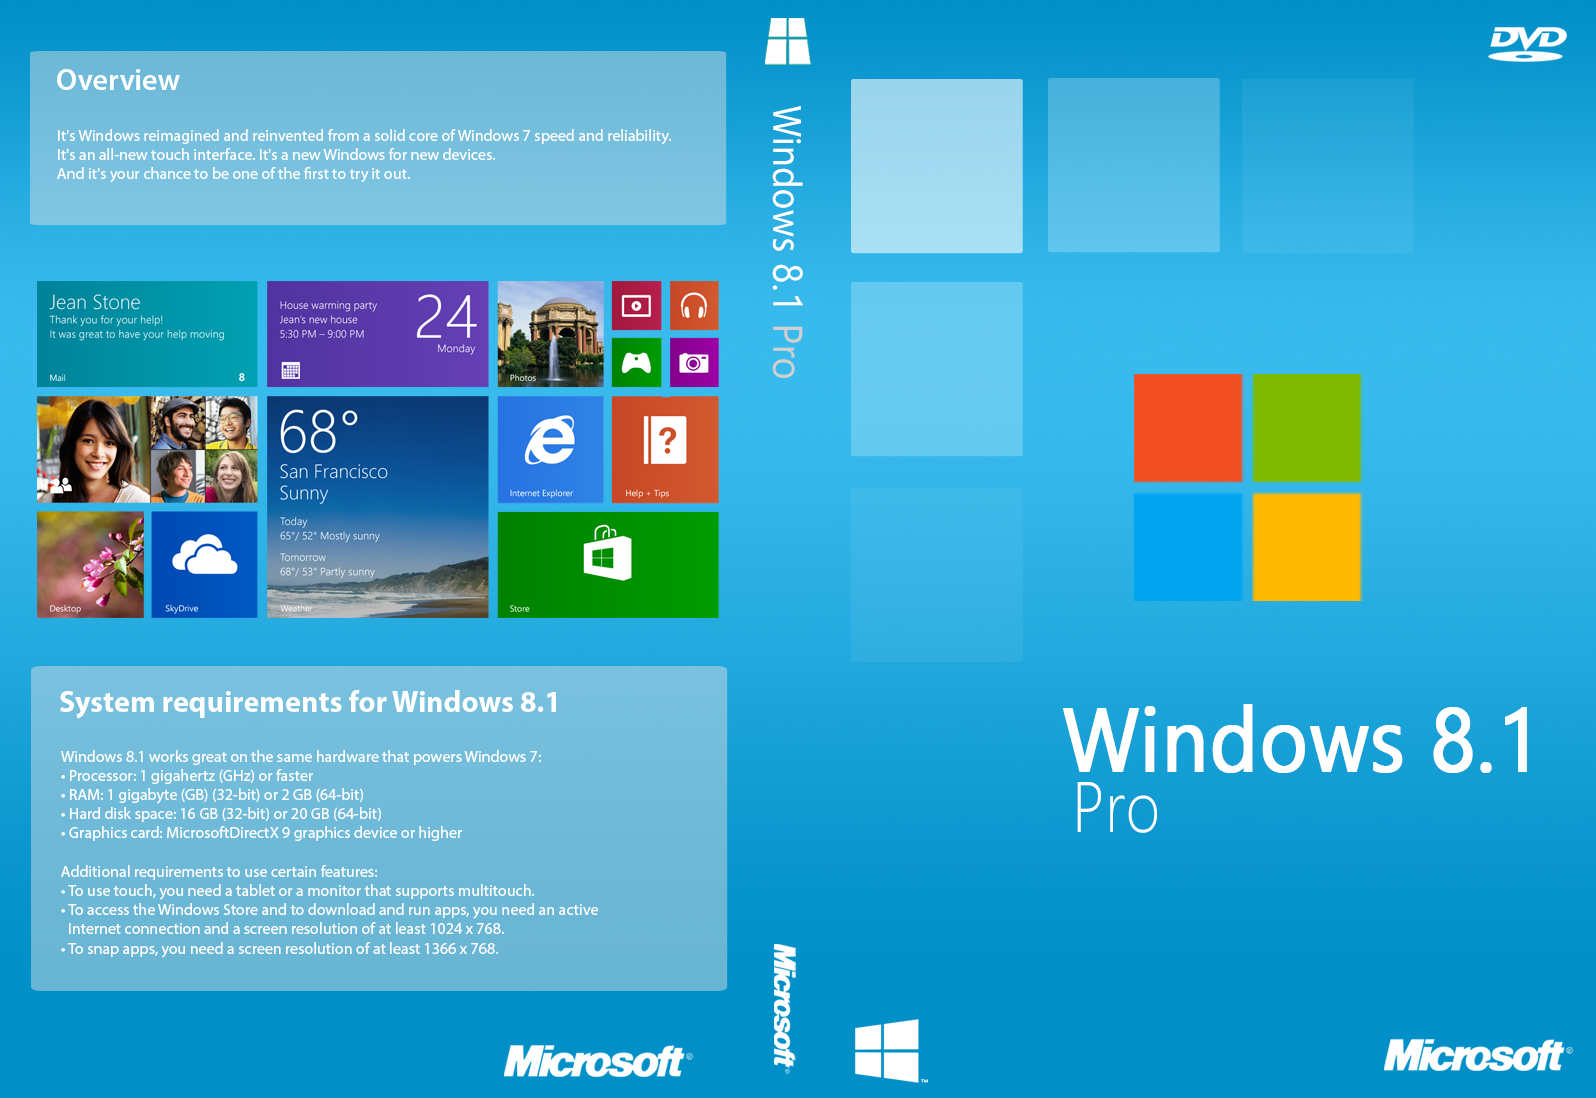 How to download Windows 8.1 Pro ISO legally without product key